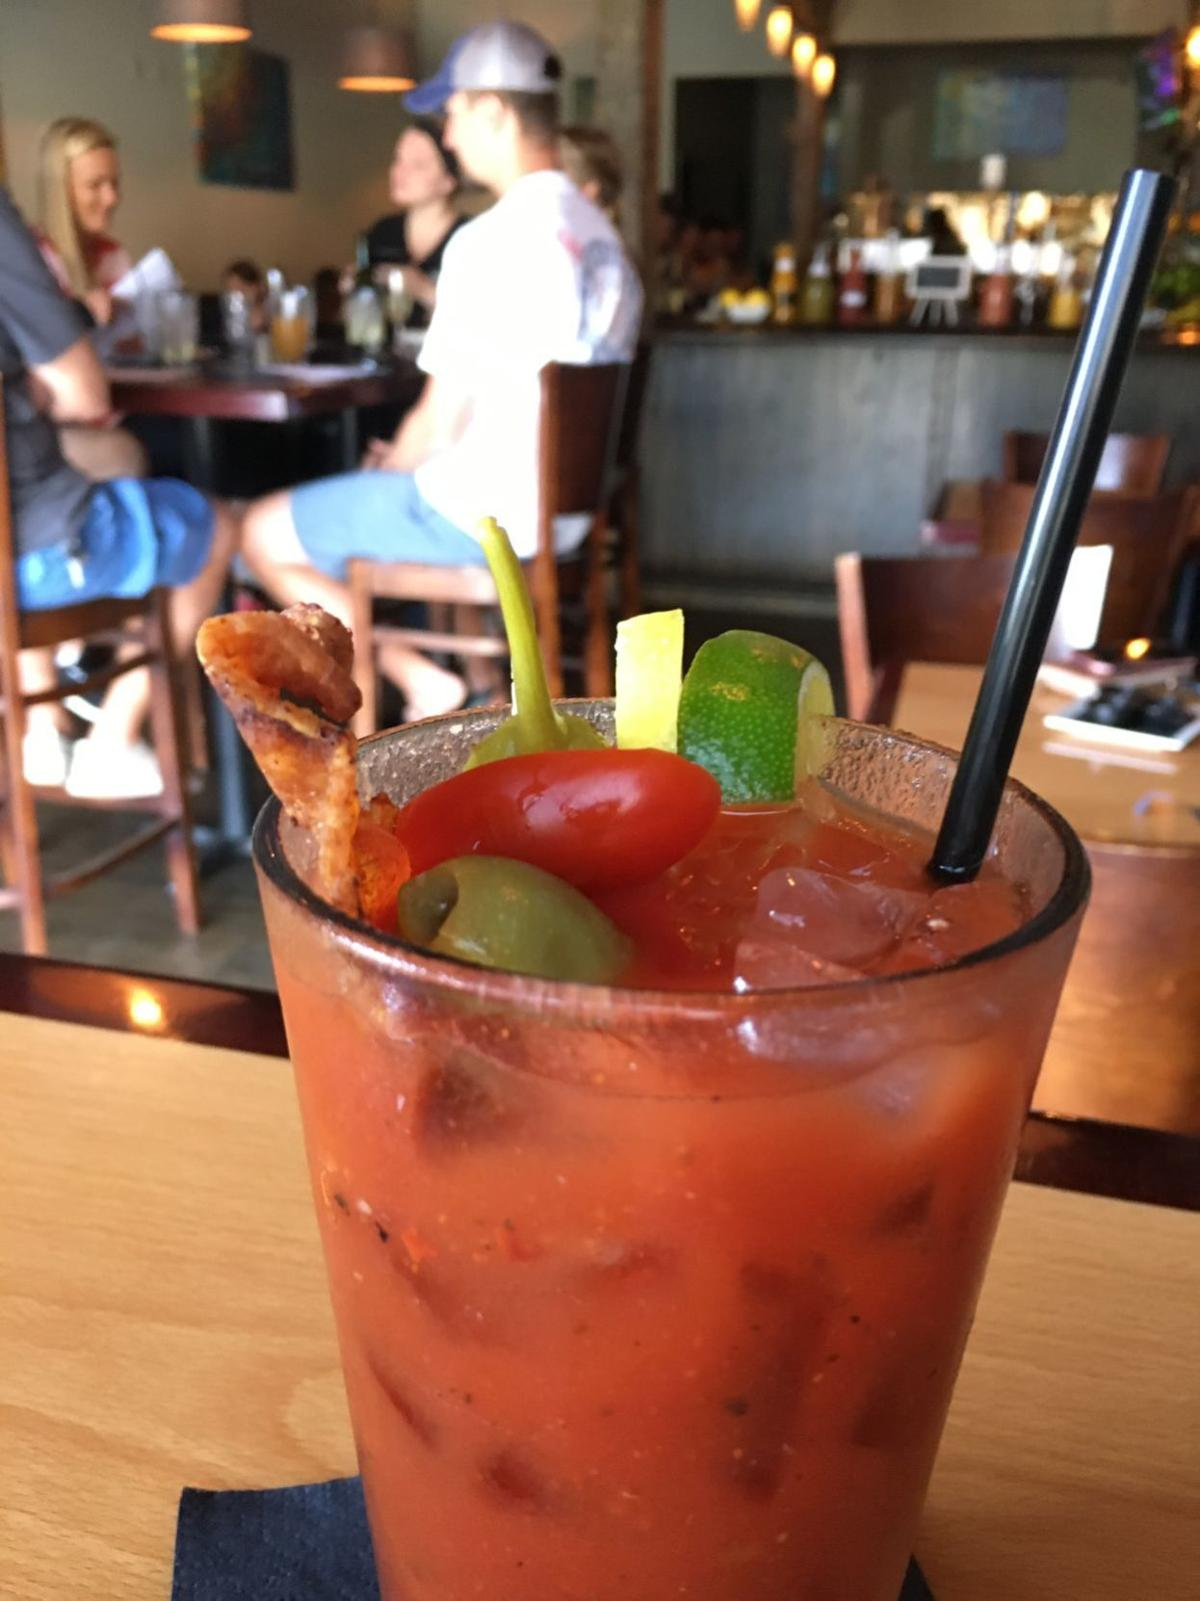 20190724-gm-food-bloody-mary.JPG